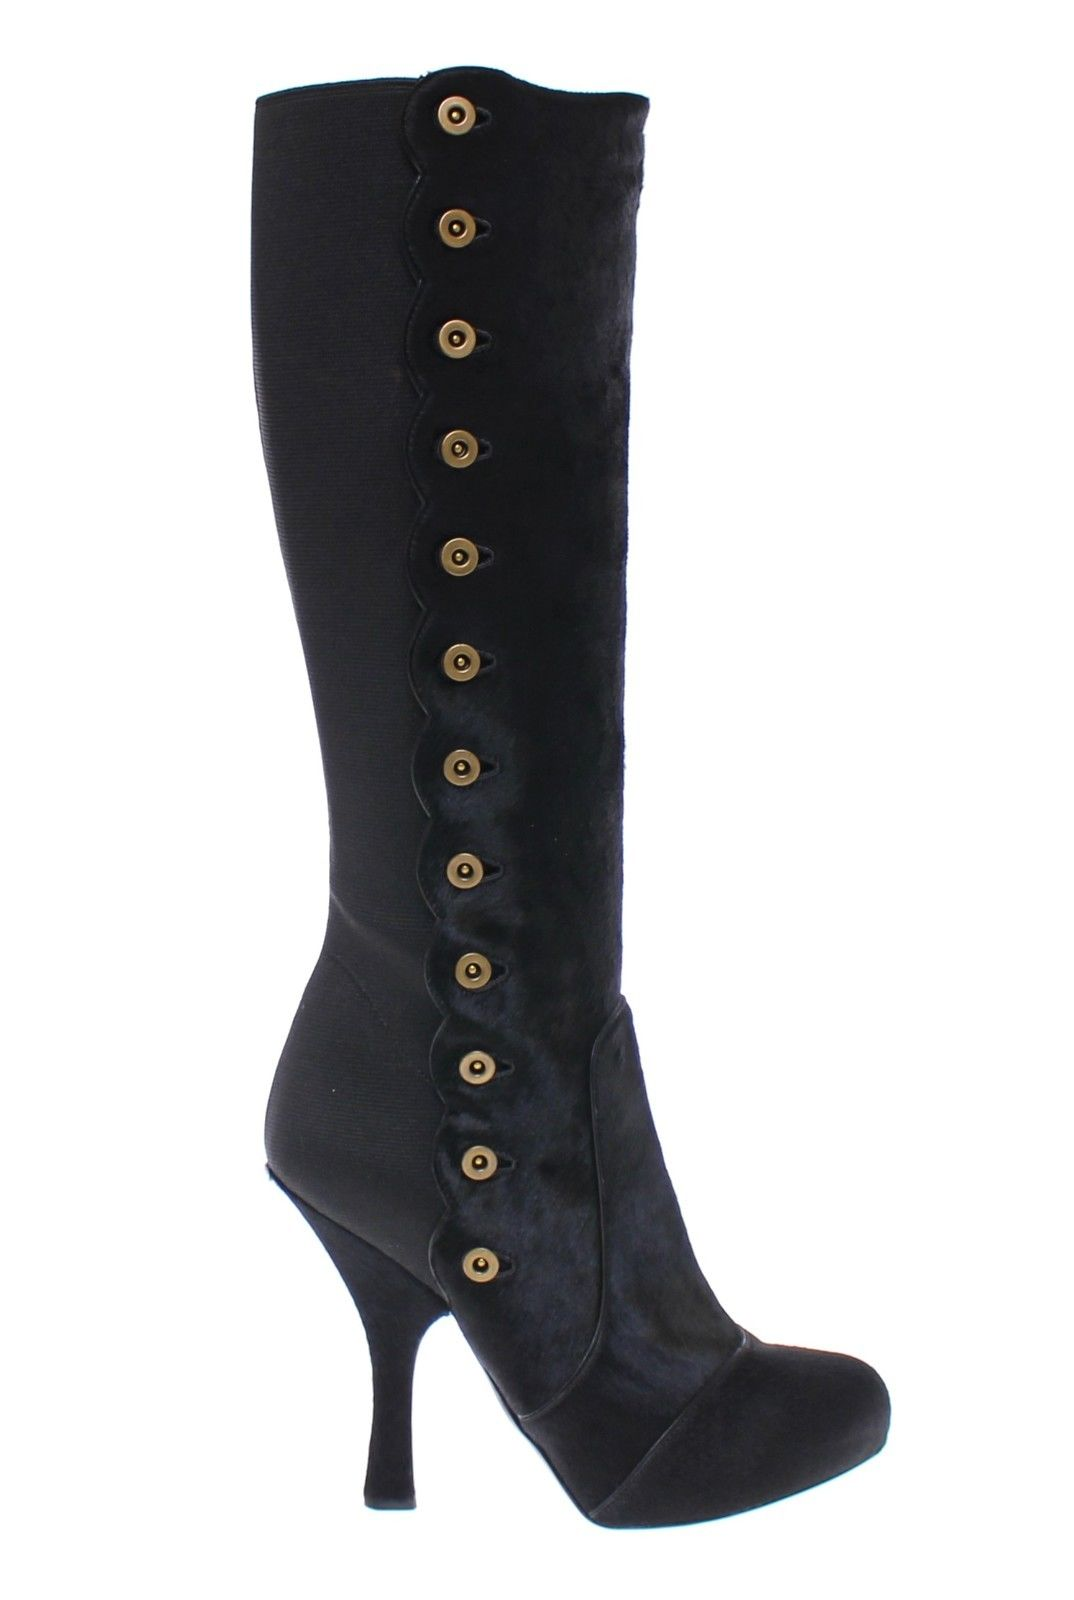 Dolce & Gabbana - Black Fur Leather Baroque Heel Boots Shoes